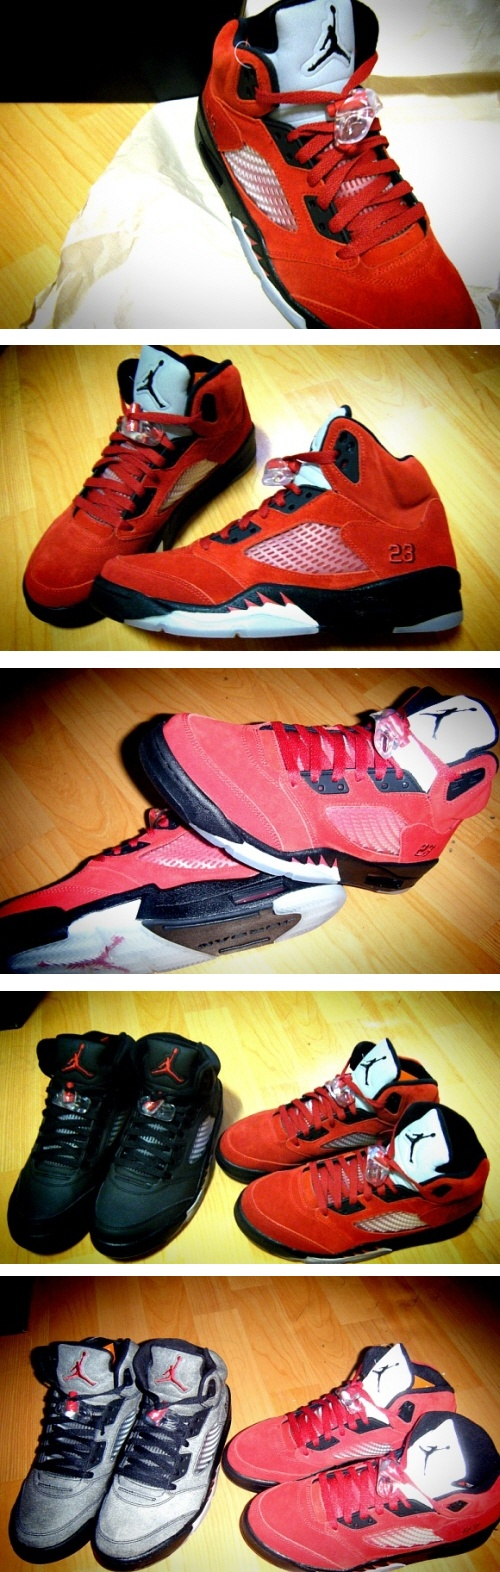 "Air Jordan 5 Retro DMP2 ""Raging Bulls Package"" + 캠핑 현장"